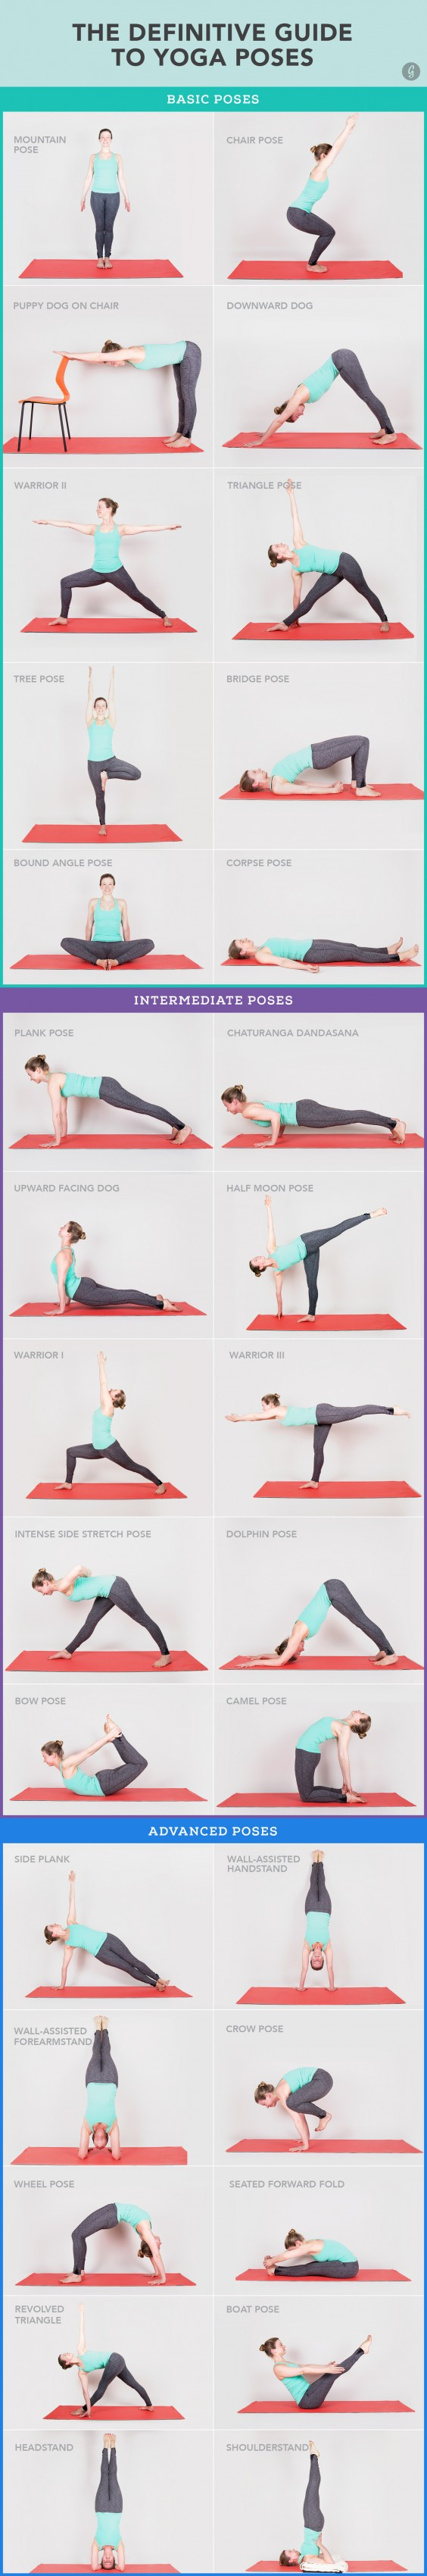 Basic Yoga Poses: 37 Common Yoga Moves and How to Master Them